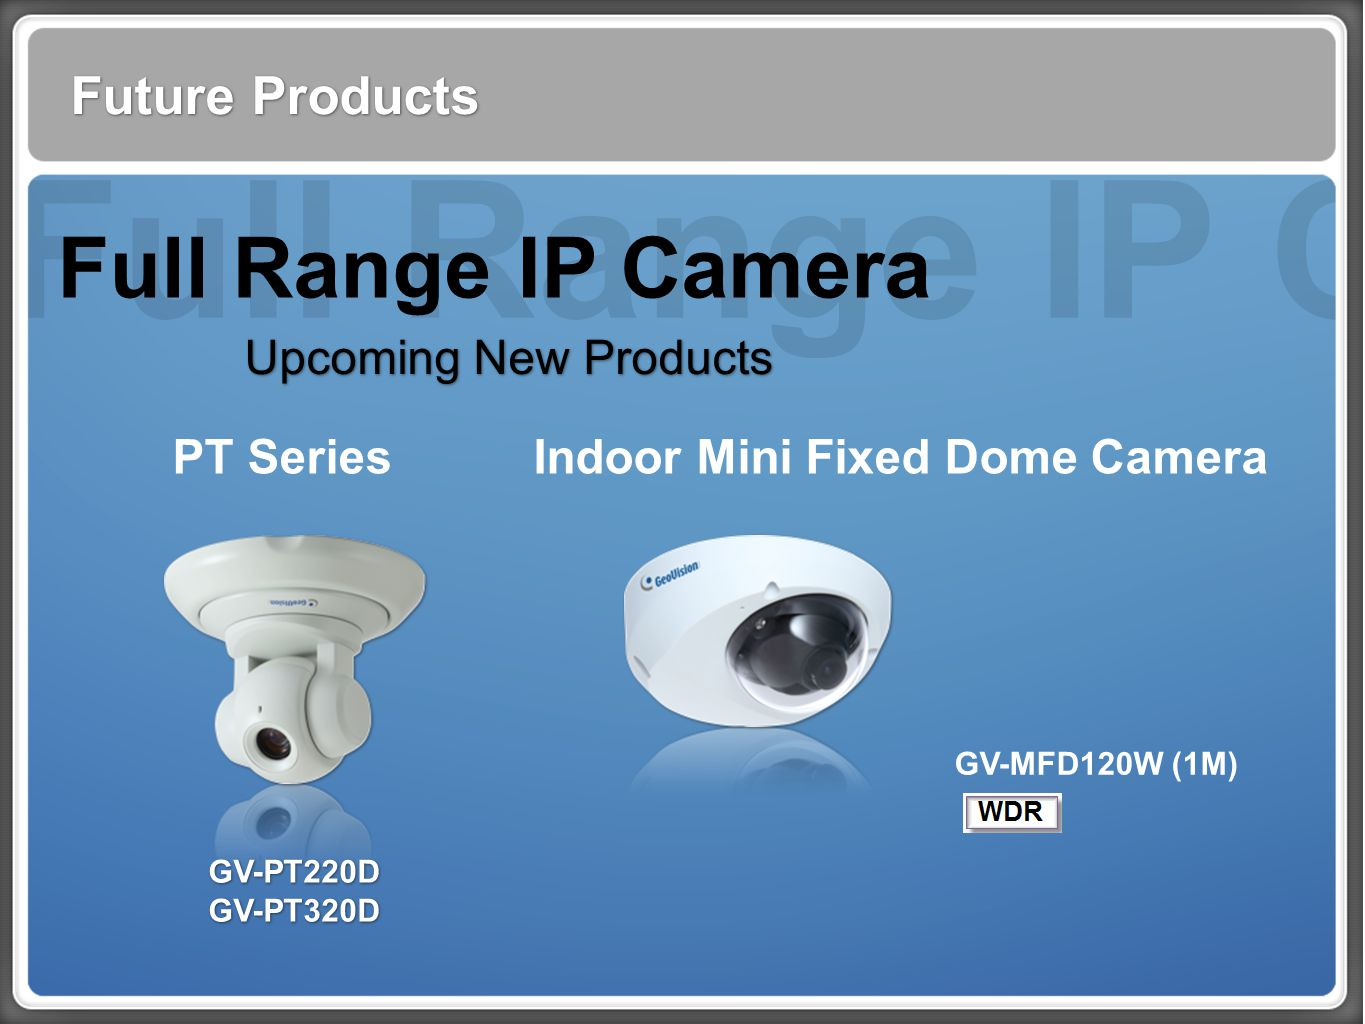 Full Range IP Cam Future Products Full Range IP Camera Upcoming New Products PT Series GV-PT220D GV-PT320D GV-PT220D GV-PT320D Indoor Mini Fixed Dome Camera GV-MFD120W (1M)